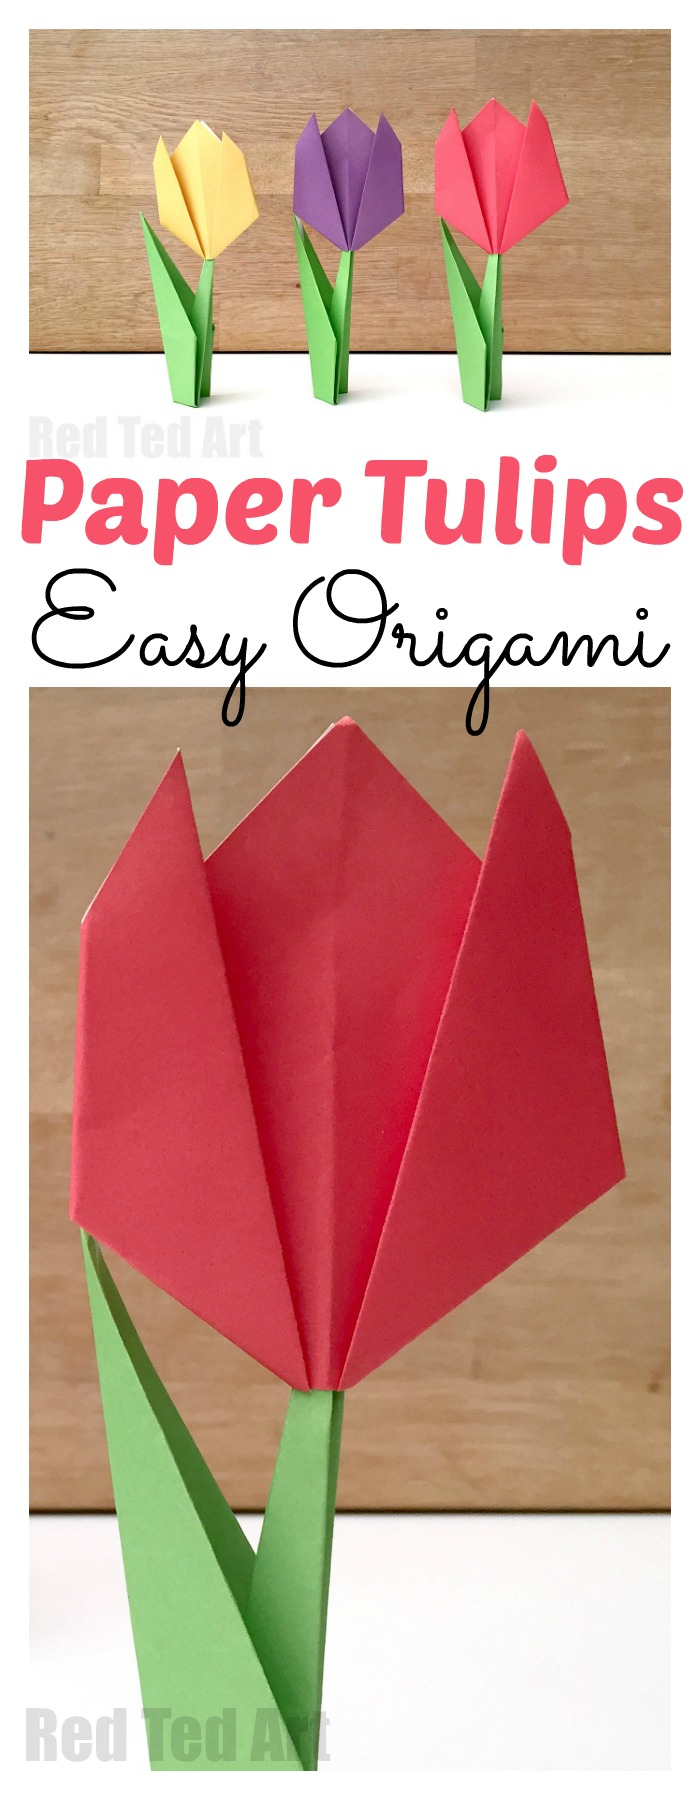 How To Make An Origami Tulip Easy Paper Tulip Red Ted Art